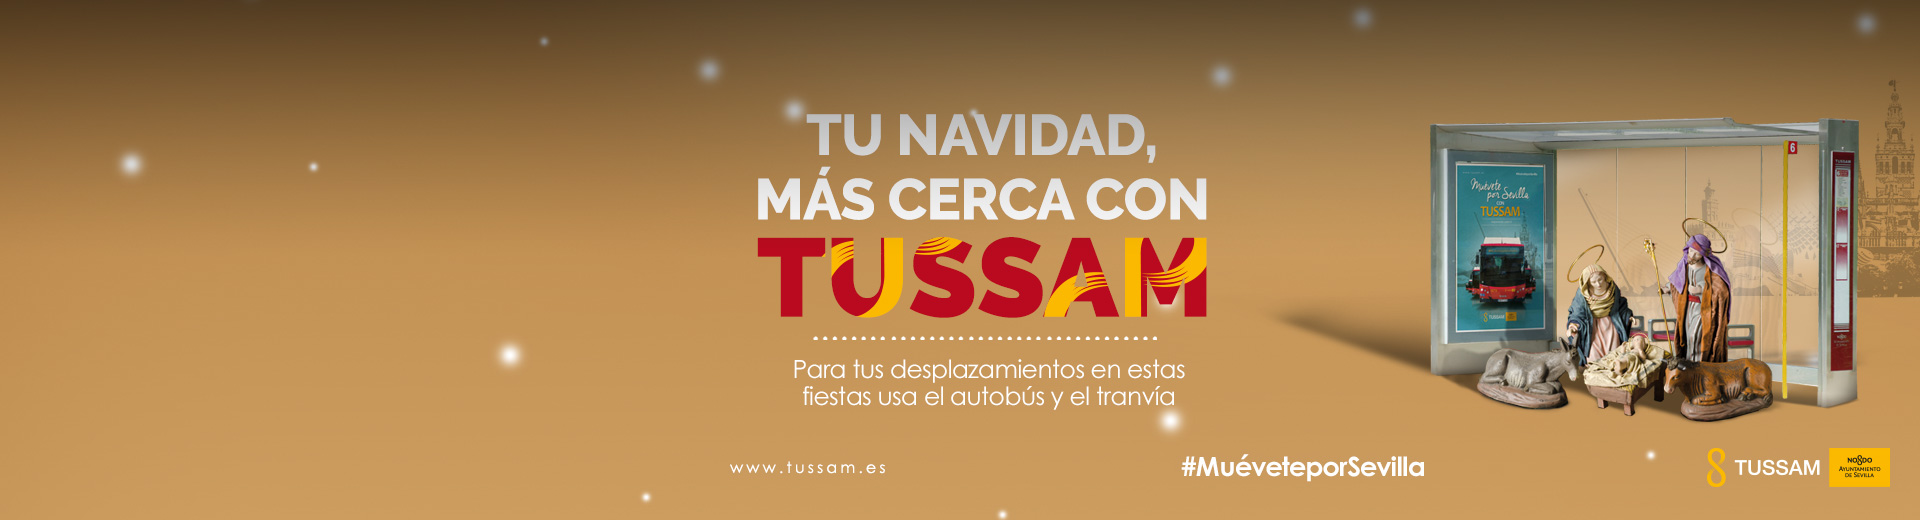 https://www.tussam.es/sites/default/files/revslider/image/Slider_1920_Alto520_2.jpg